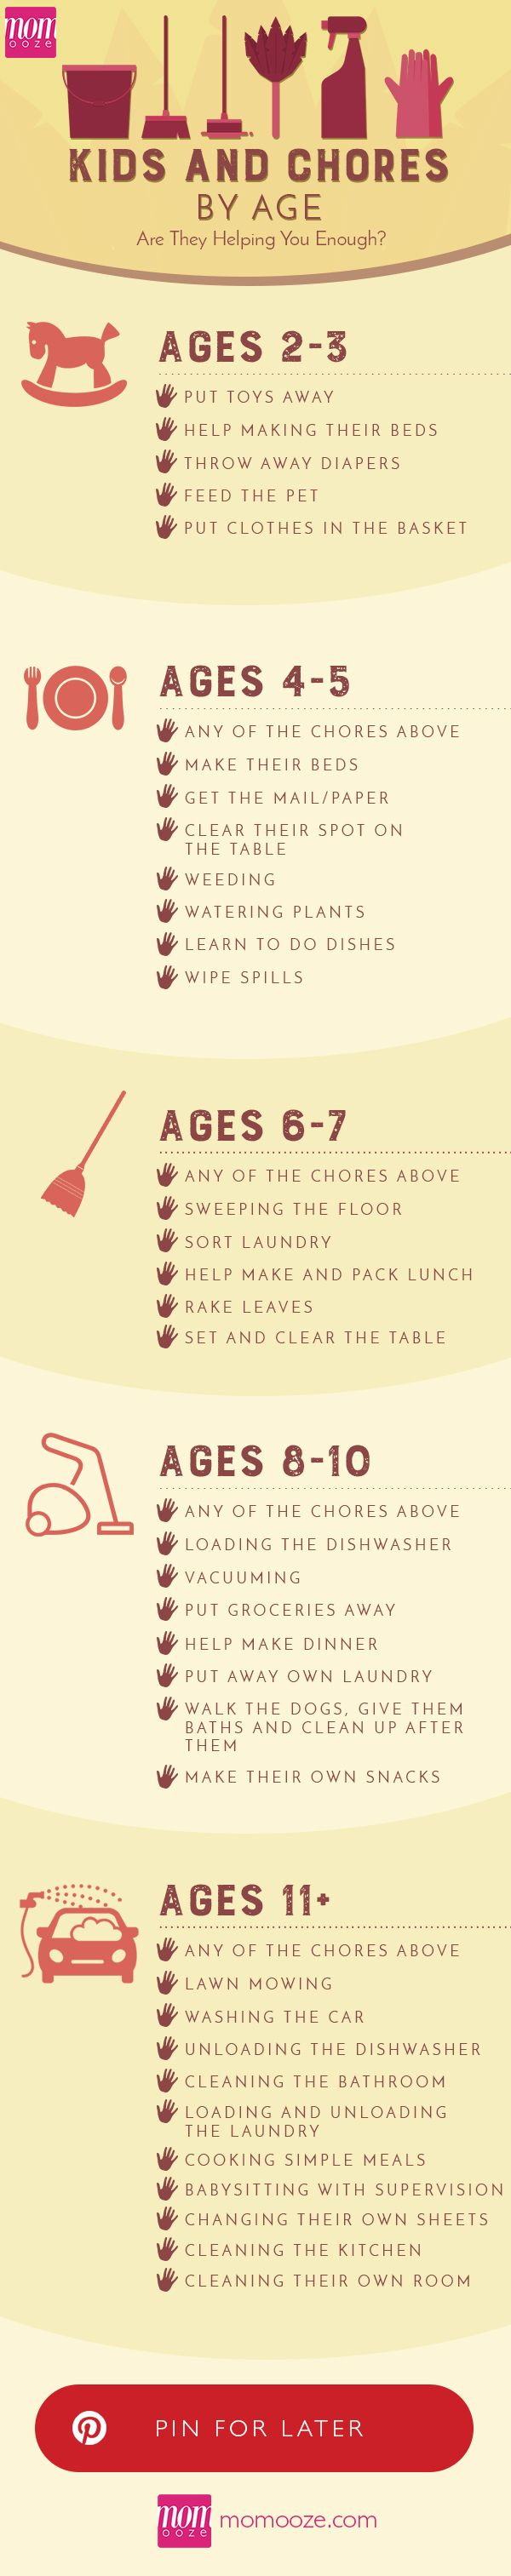 Kids Chores by Age: Are they helping you enough? #kidschores #chart #age